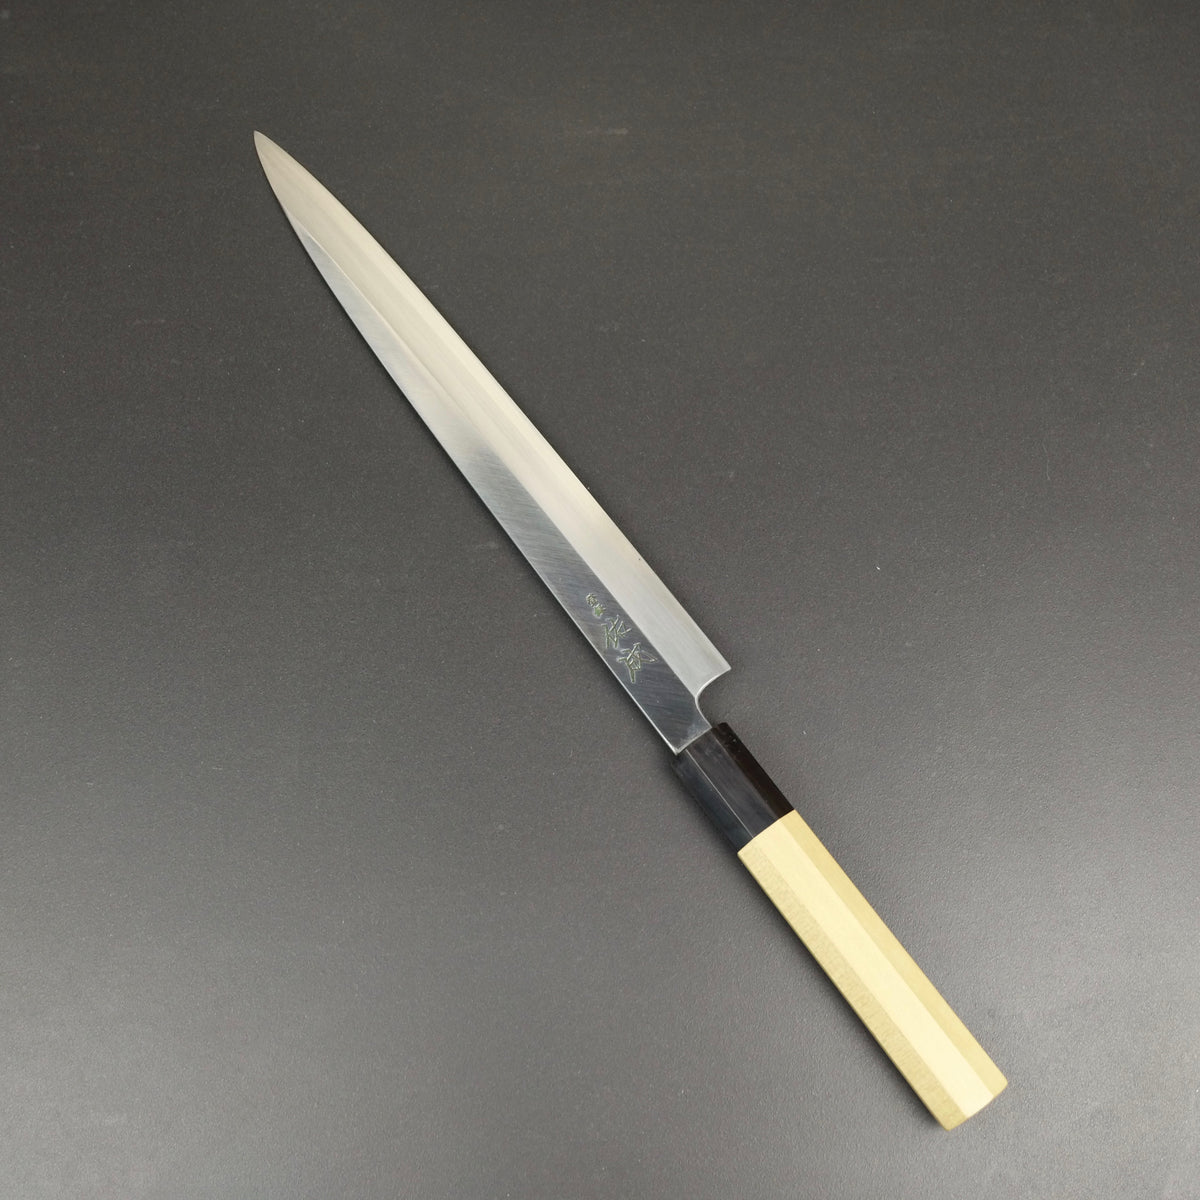 Yanagiba knife, VG10 stainless steel, traditional single bevel - Sukenari